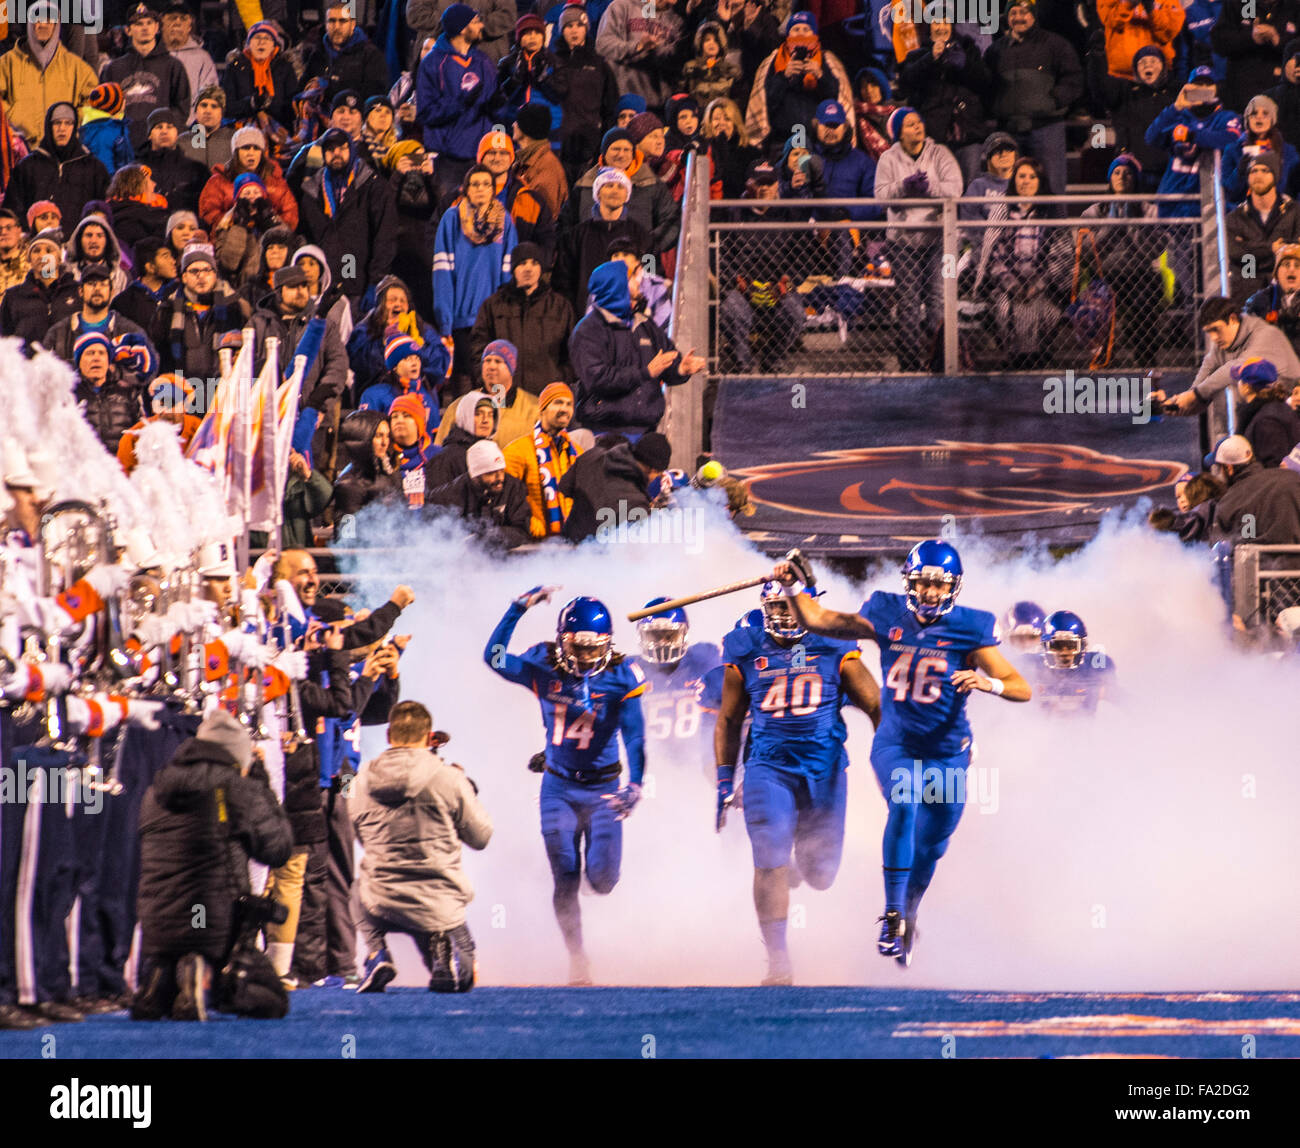 Football, Boise State football team entering Albertson's Stadium blue field through fog cloud before game time. - Stock Image